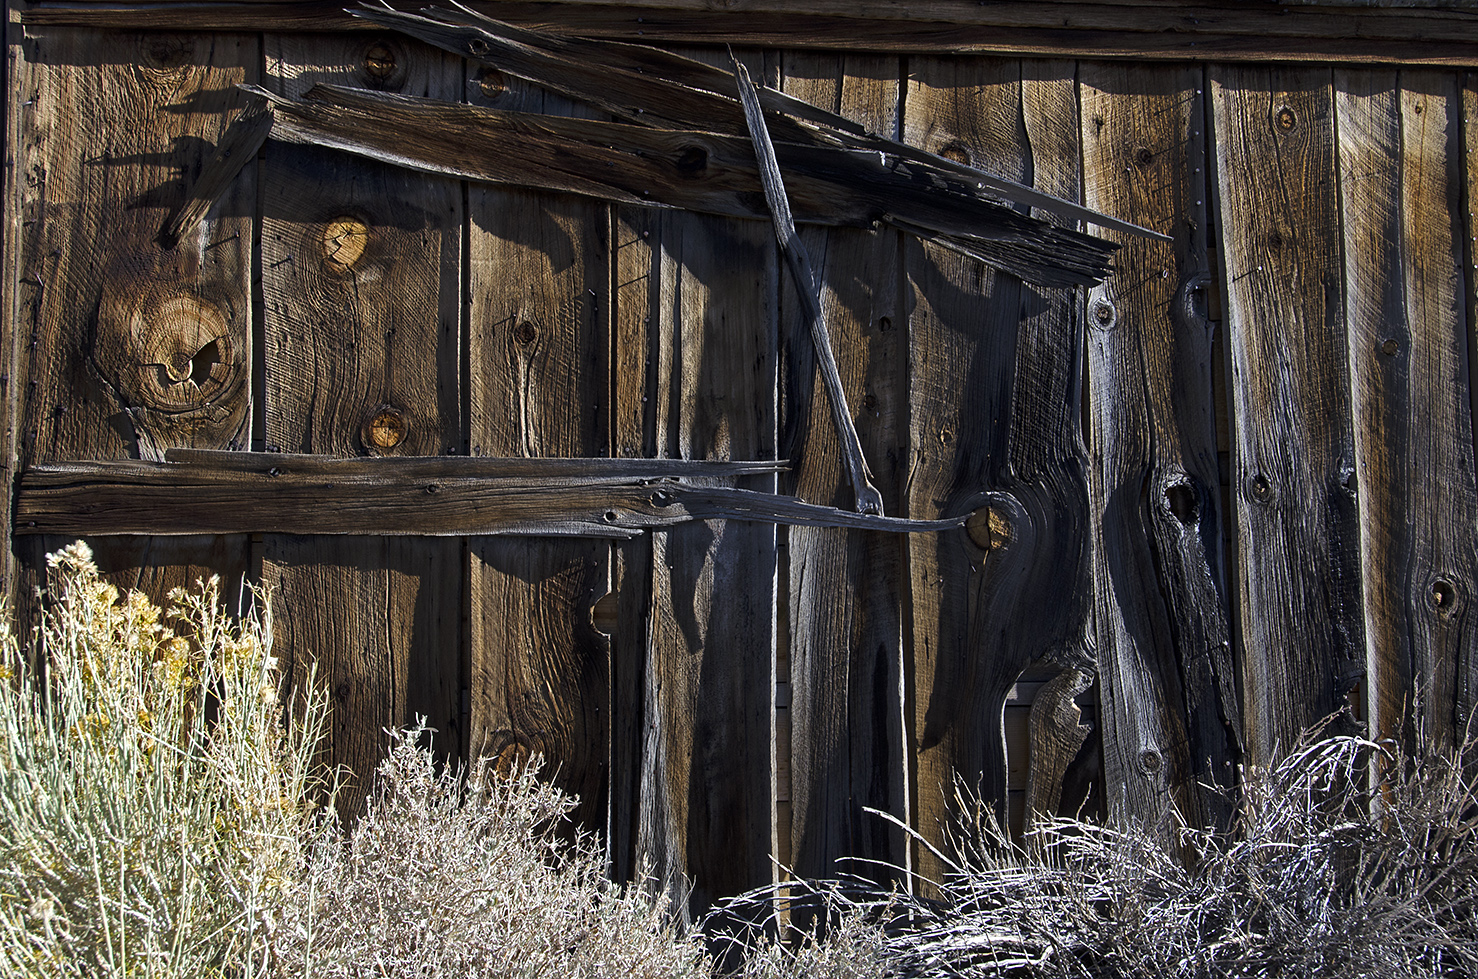 The people of Bodie used whatever they could to patch up their buildings.